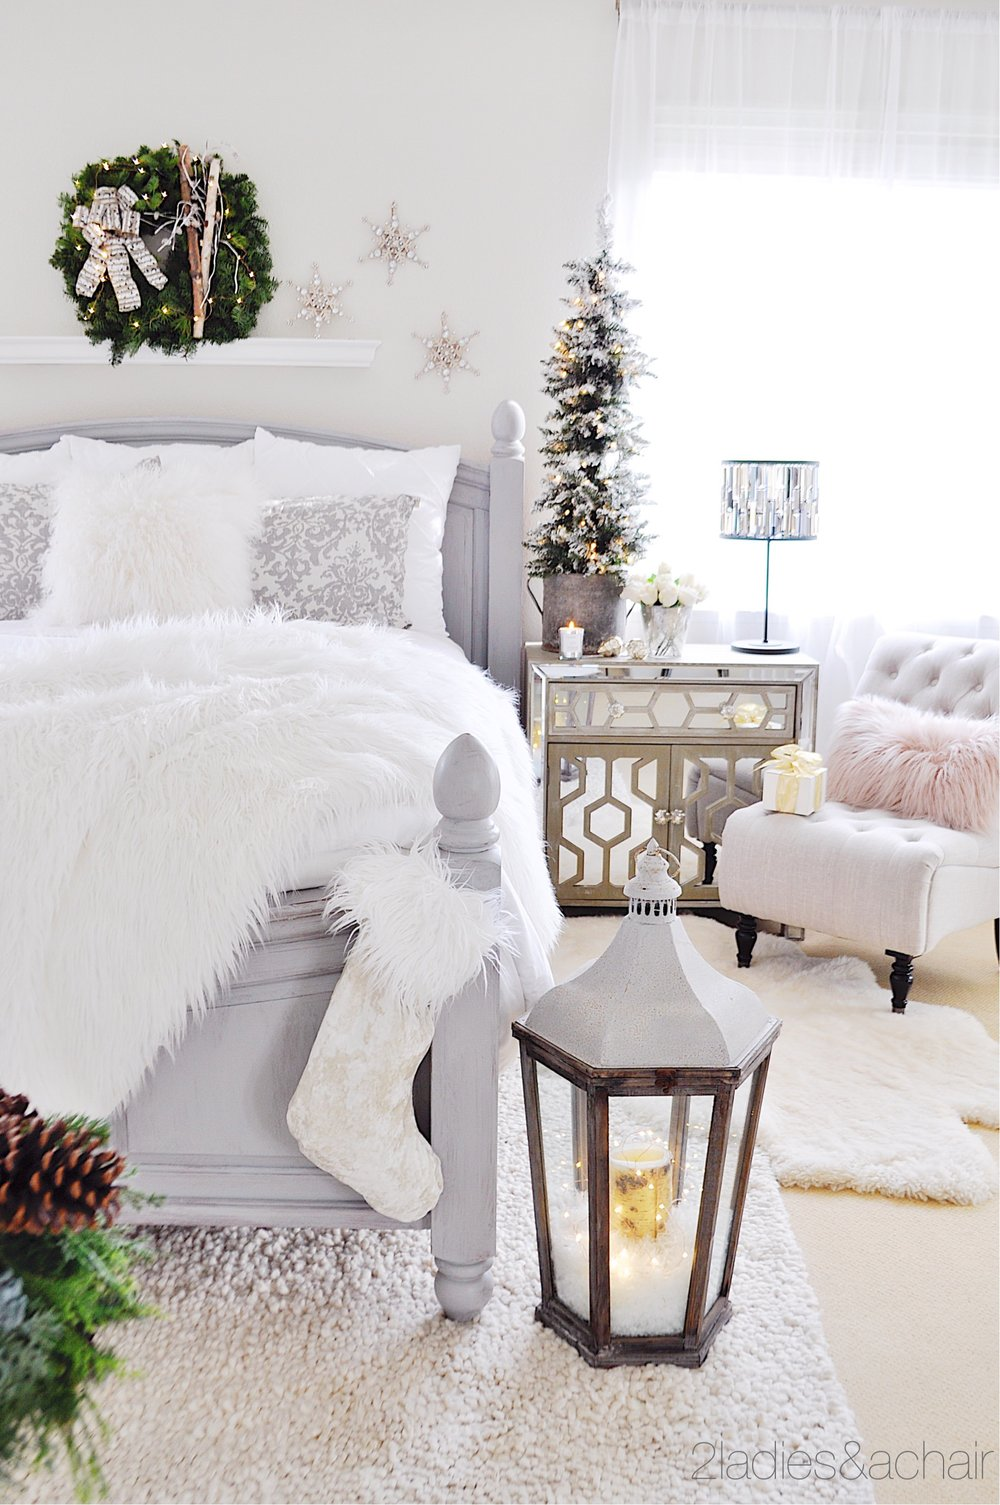 christmas bedroom decor IMG_9885.JPG